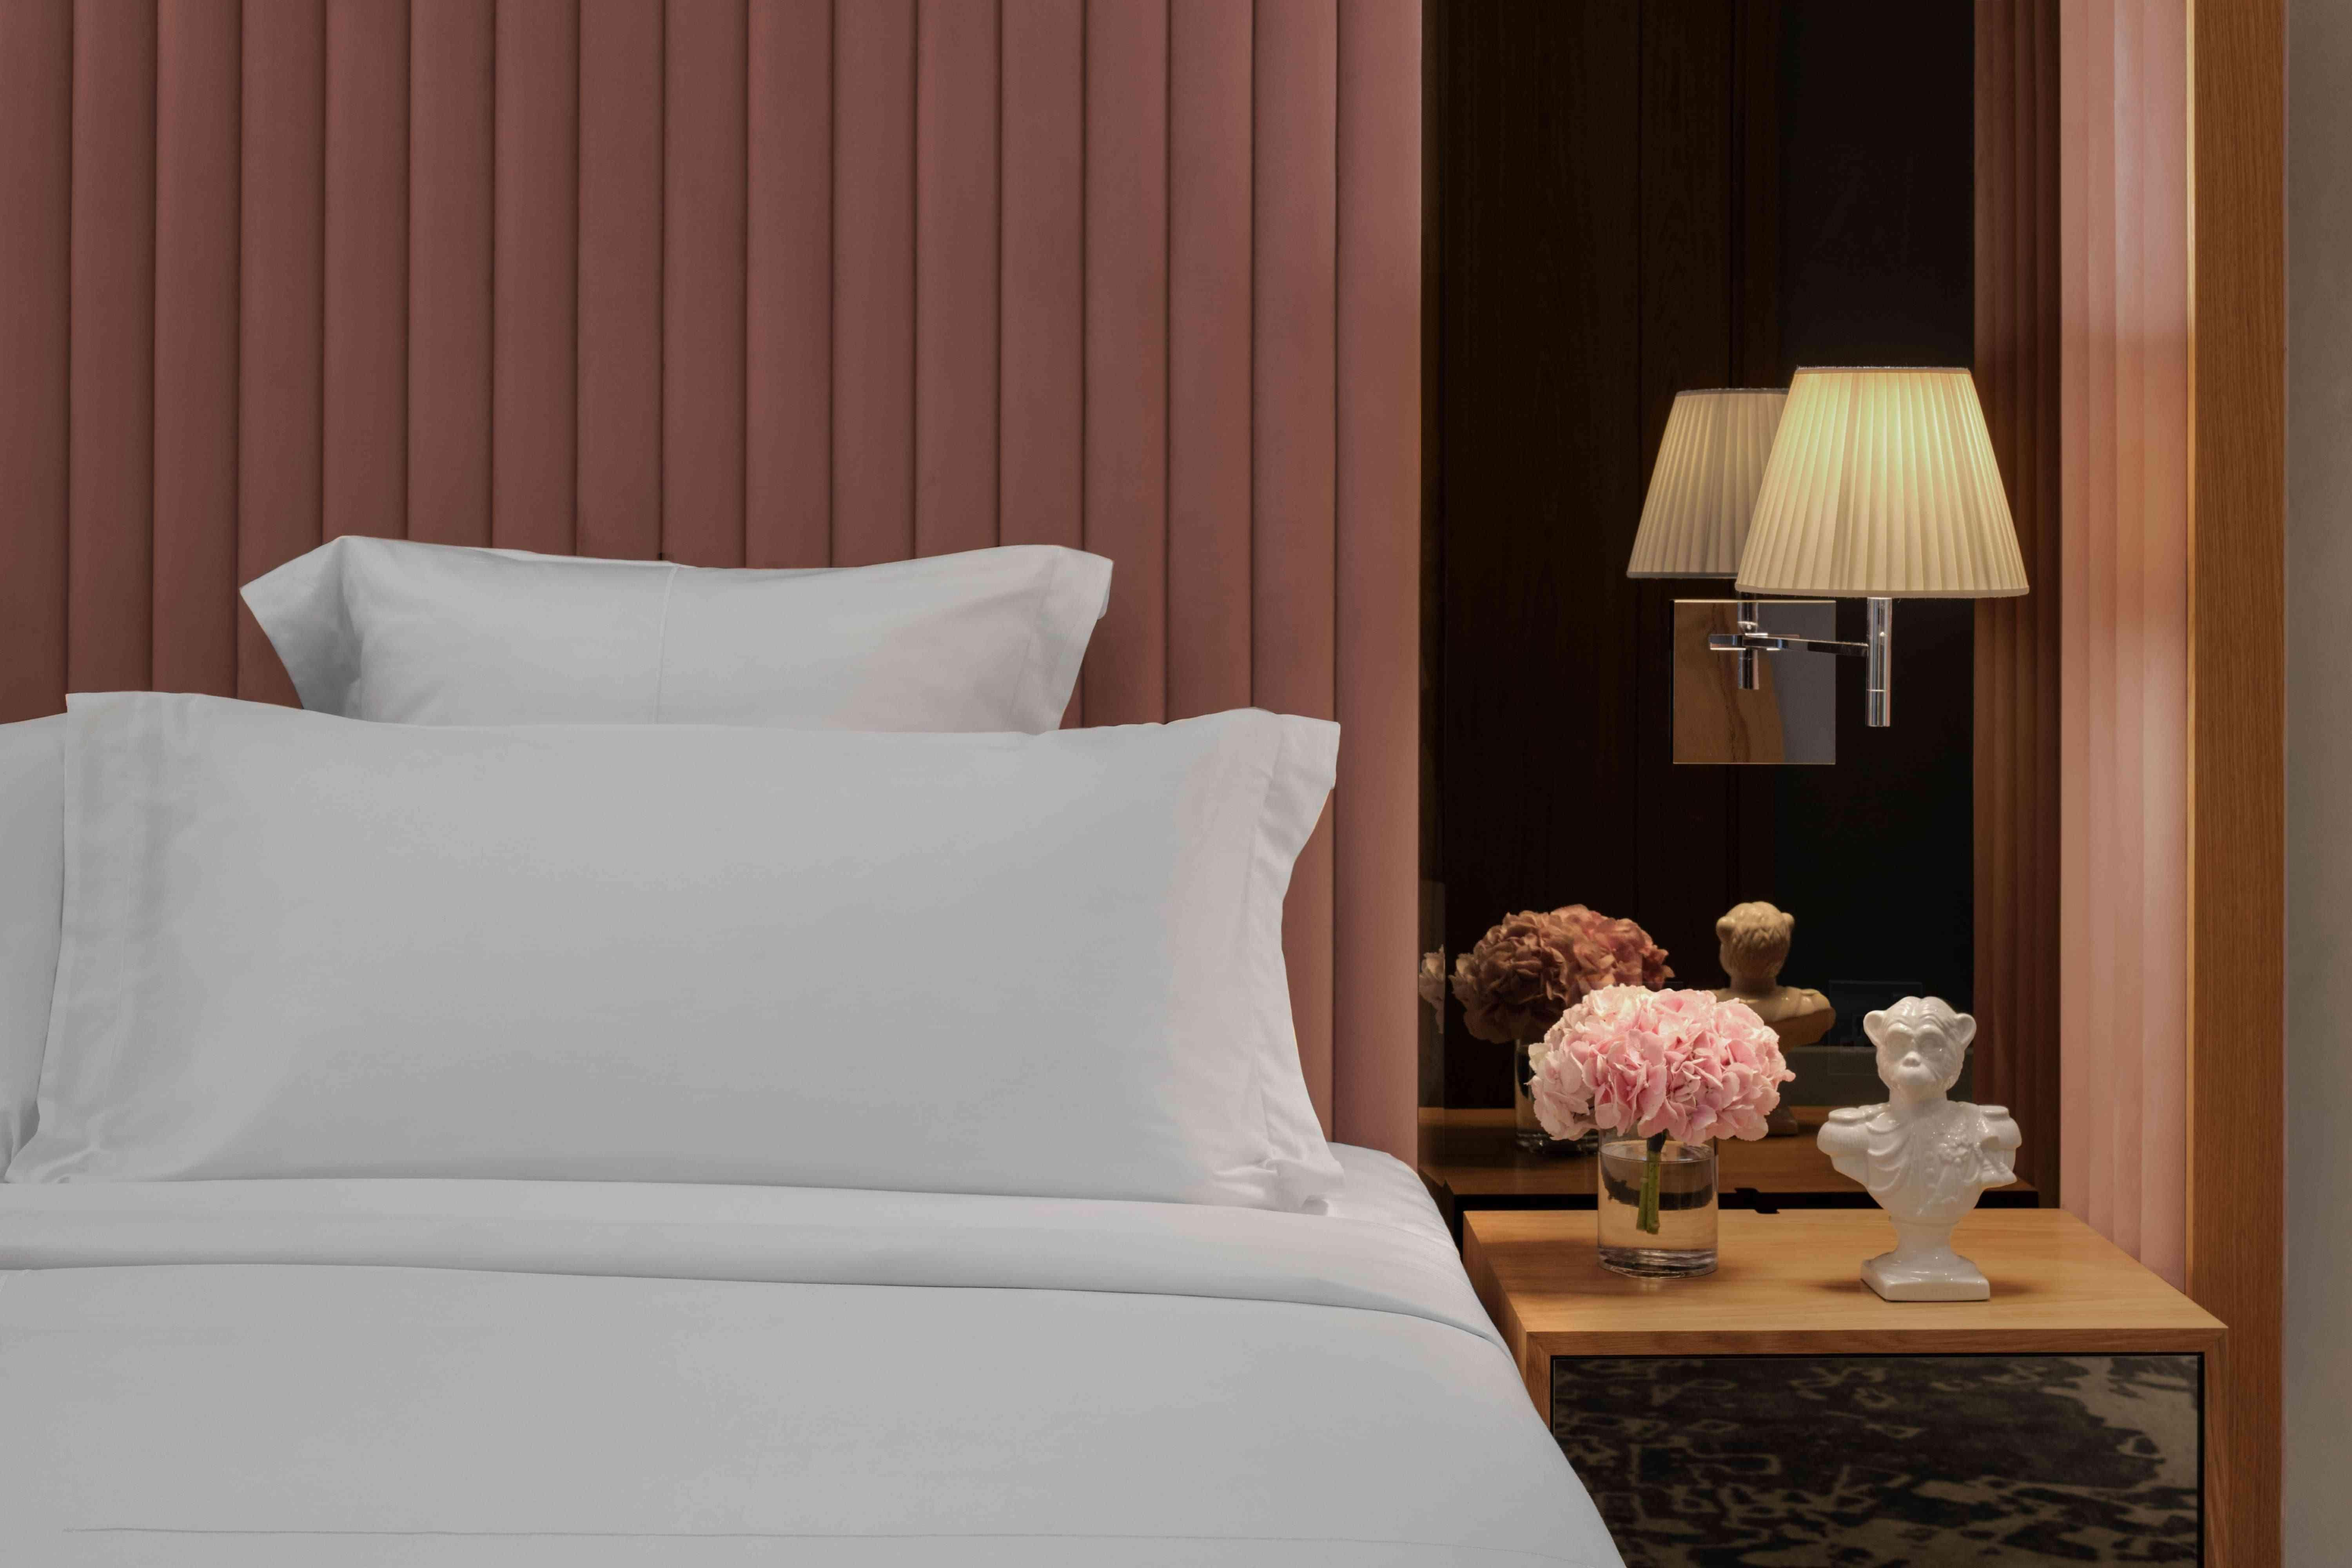 hotel bed and night stand